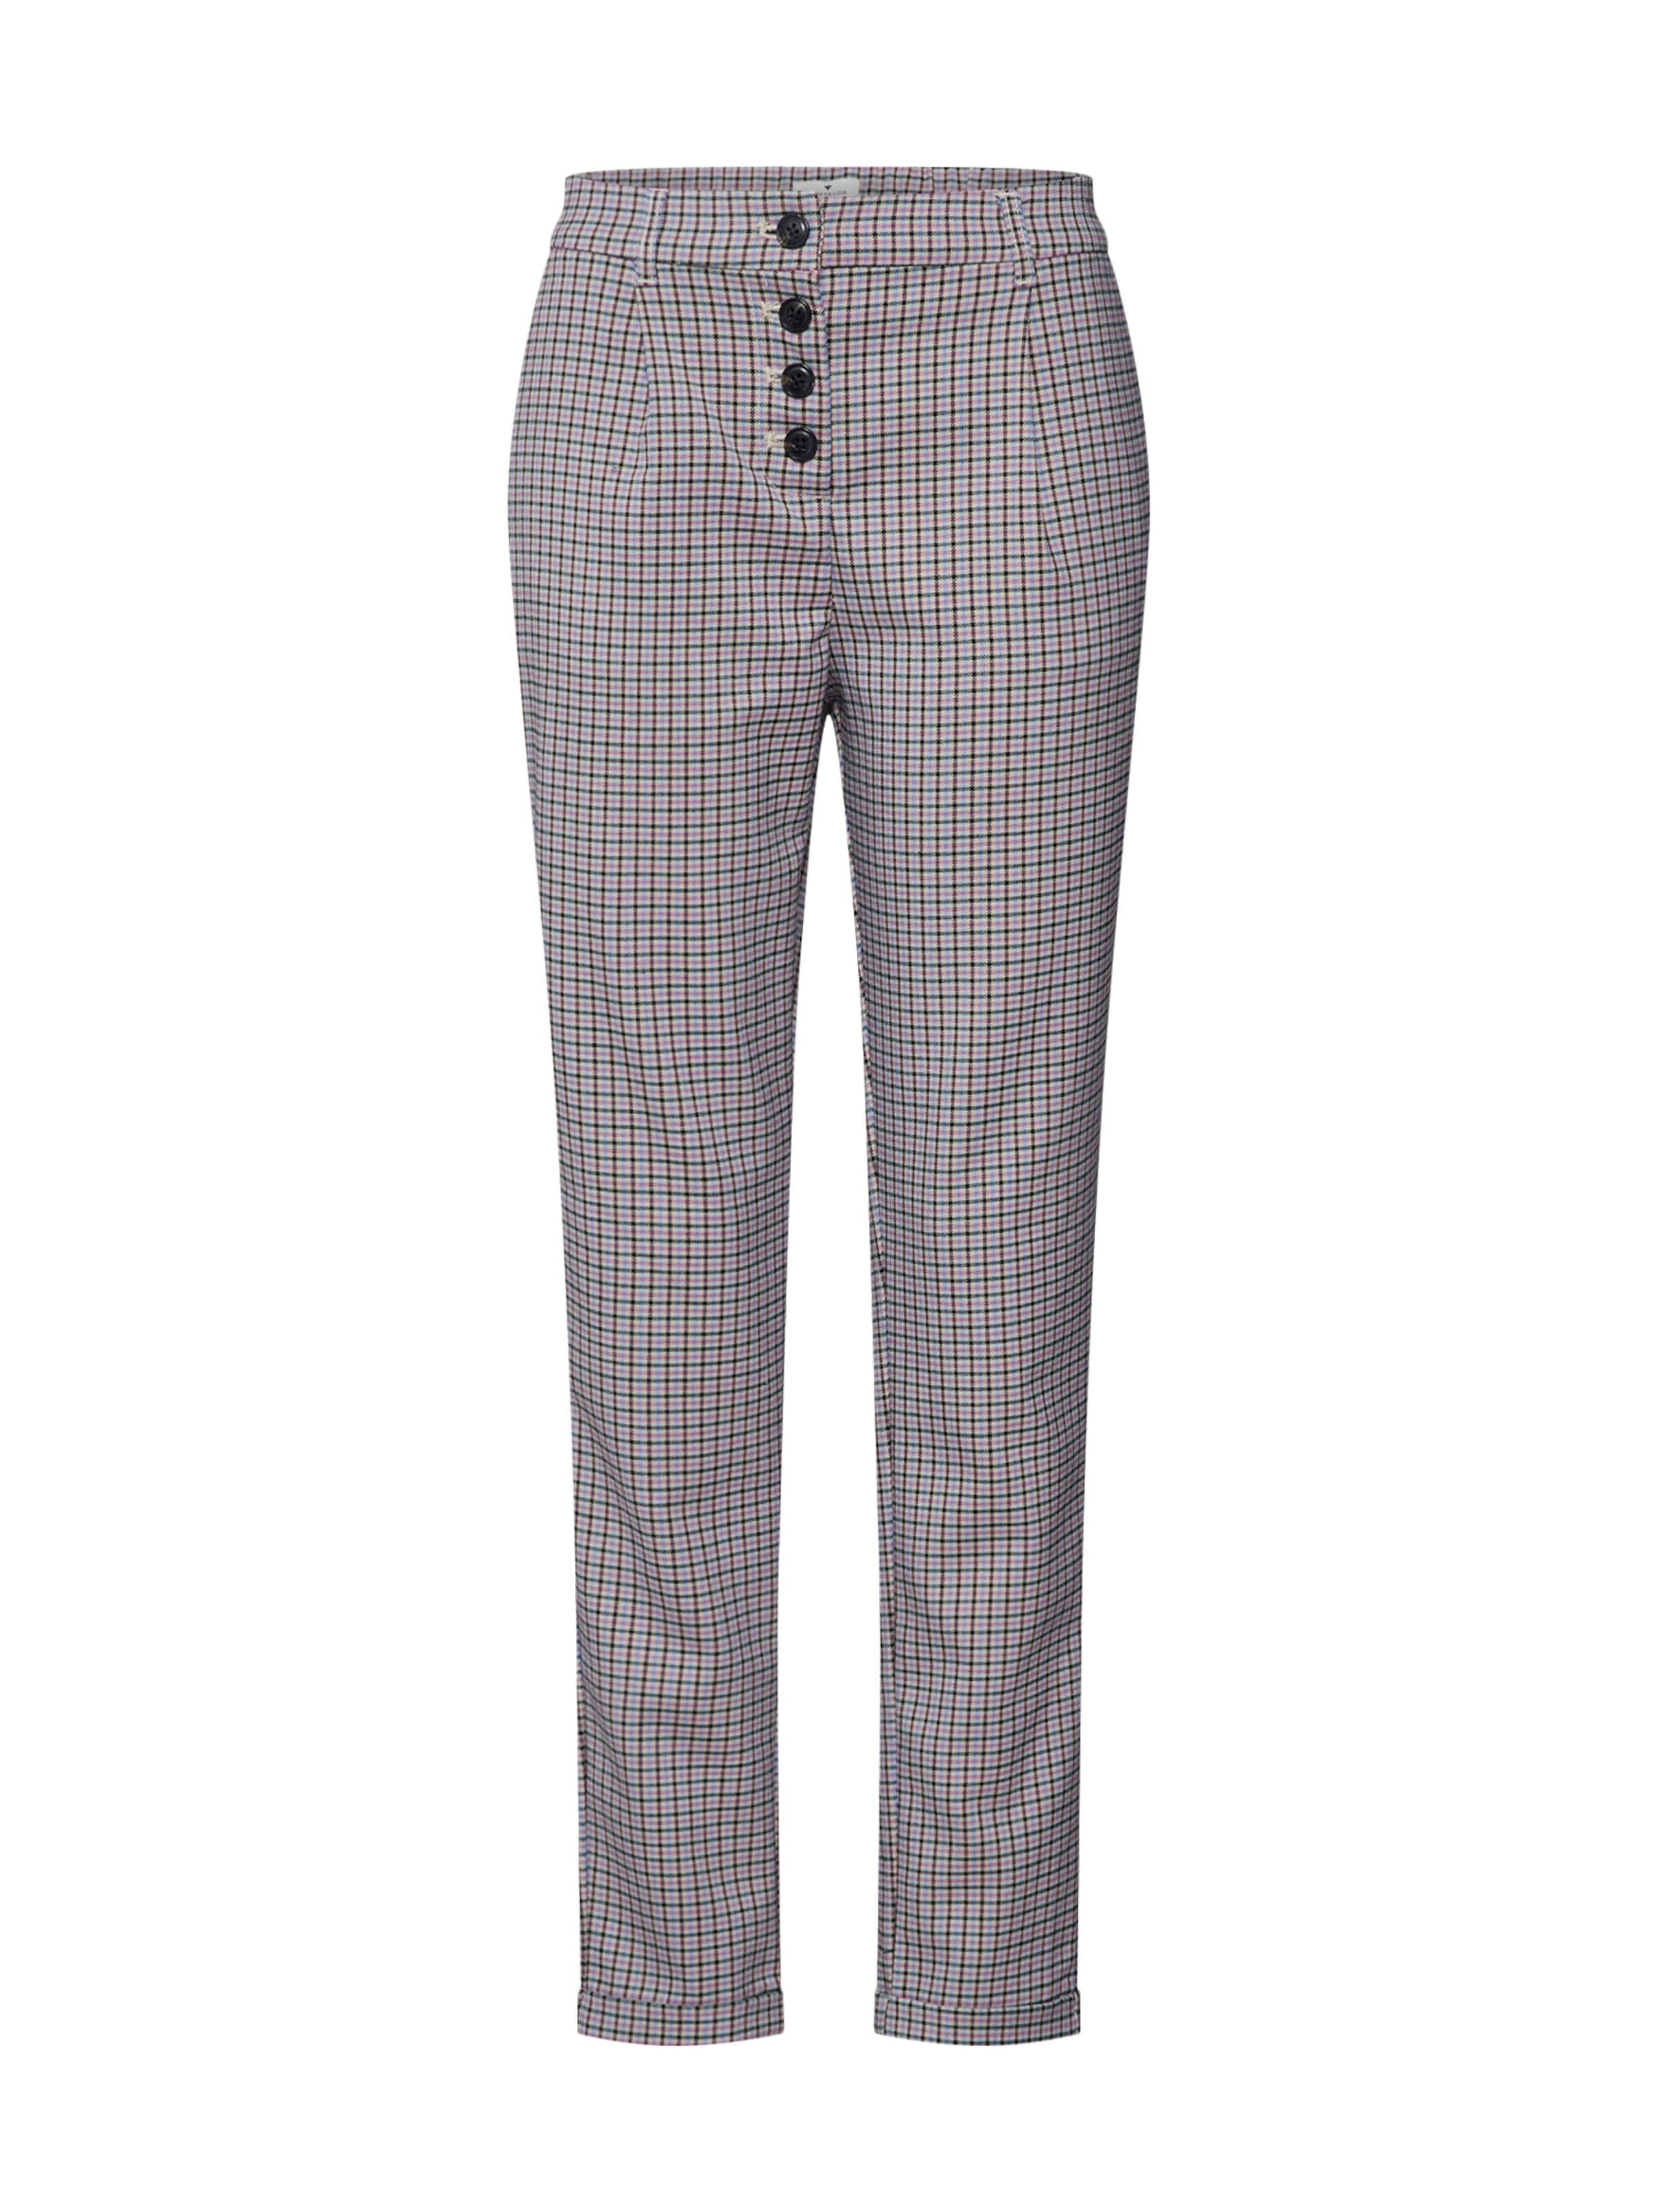 Trousers In 'checked Fit 1 Tom BeigeMischfarben Tailor 1' Pants DamenHosen Loose HWDYEI29